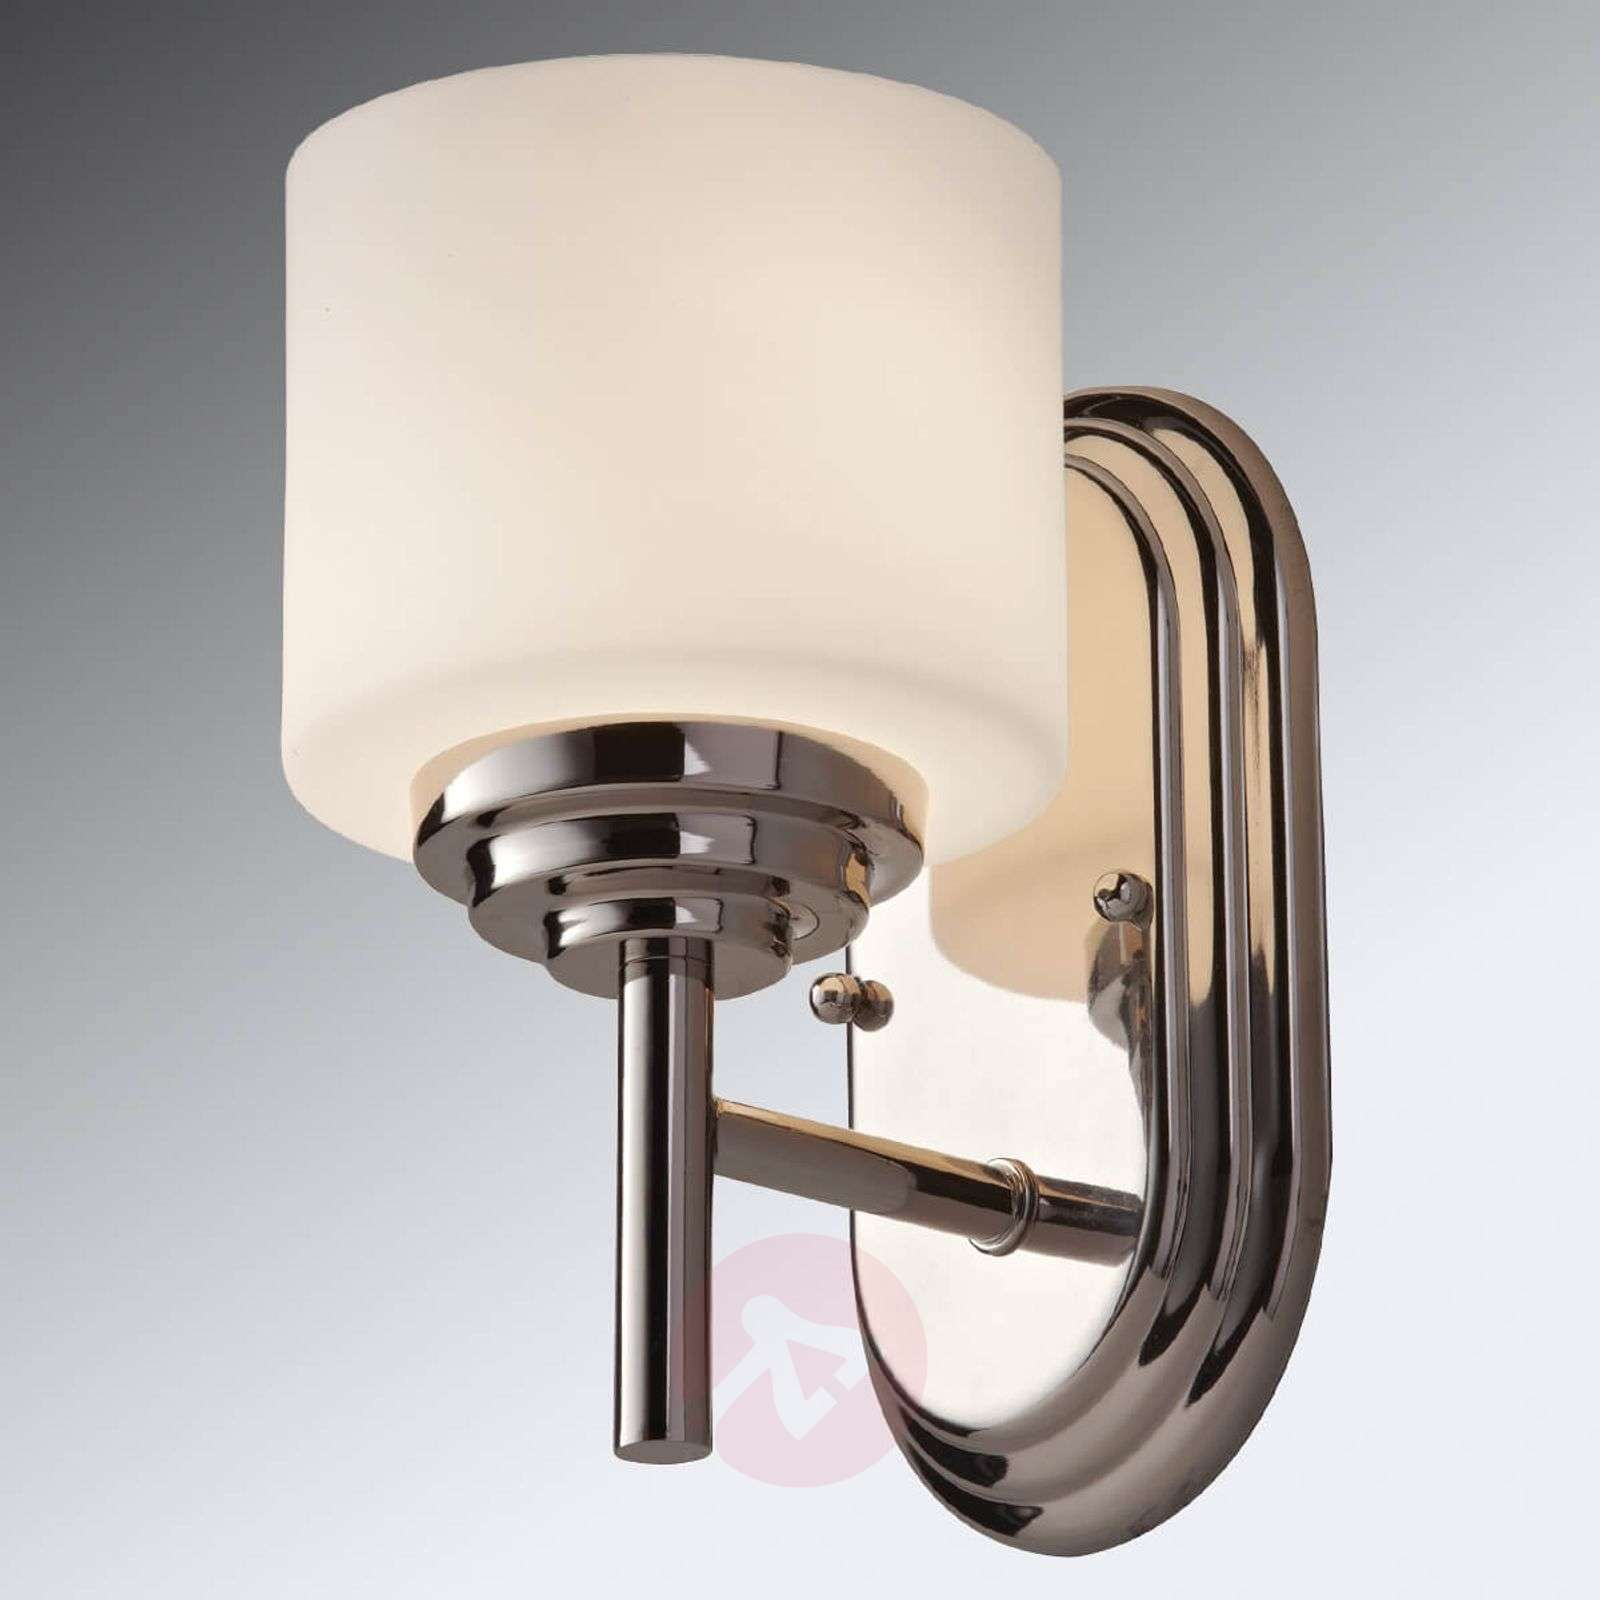 Bathroom wall light Malibu in an elegant style-3048638-01